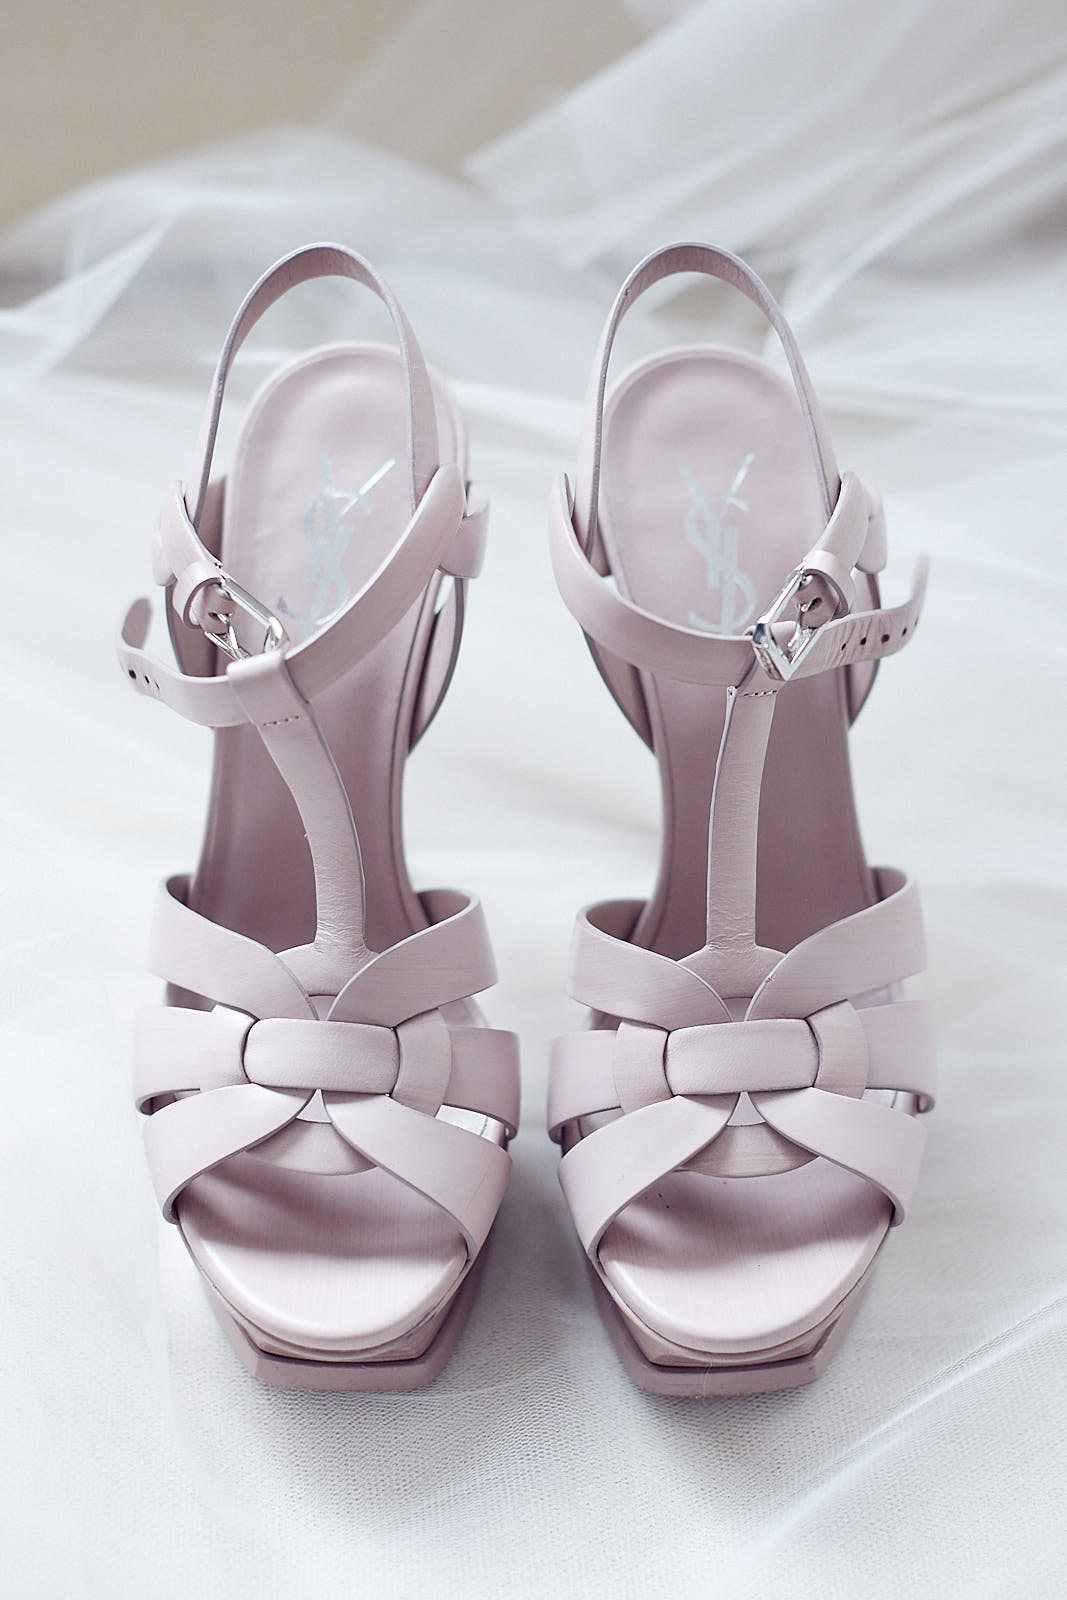 YSL wedding shoes Destination wedding photographer Lost In Love Photography